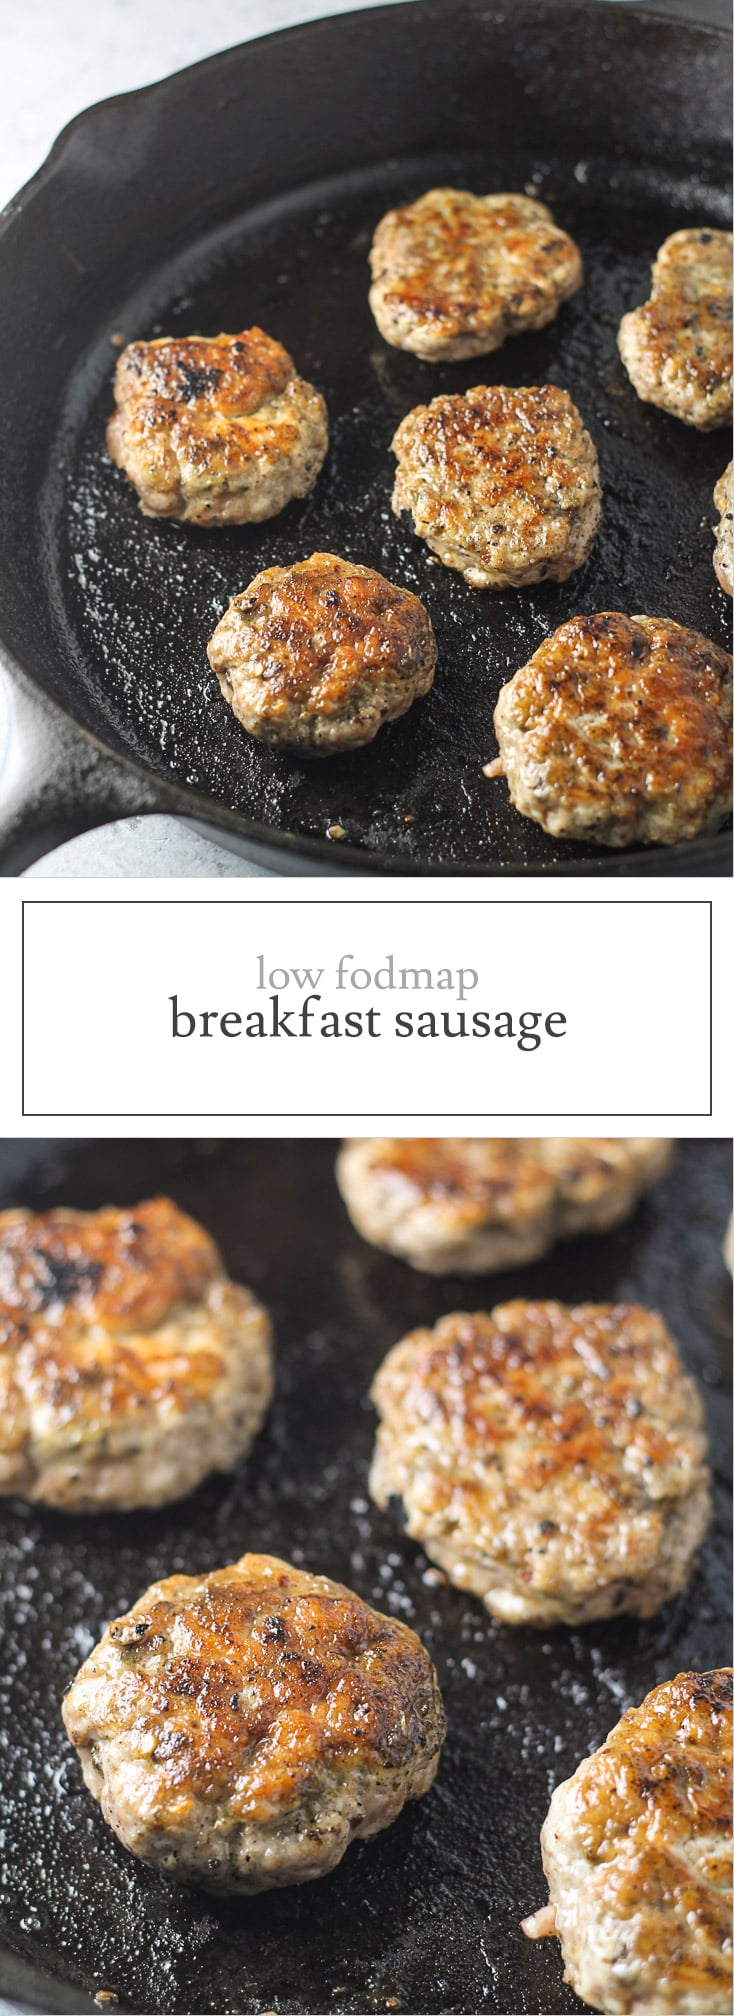 Gluten-free and Whole30 compliant, this Low FODMAP Breakfast Sausage recipe offers a classic breakfast staple without the garlic or onion powder!